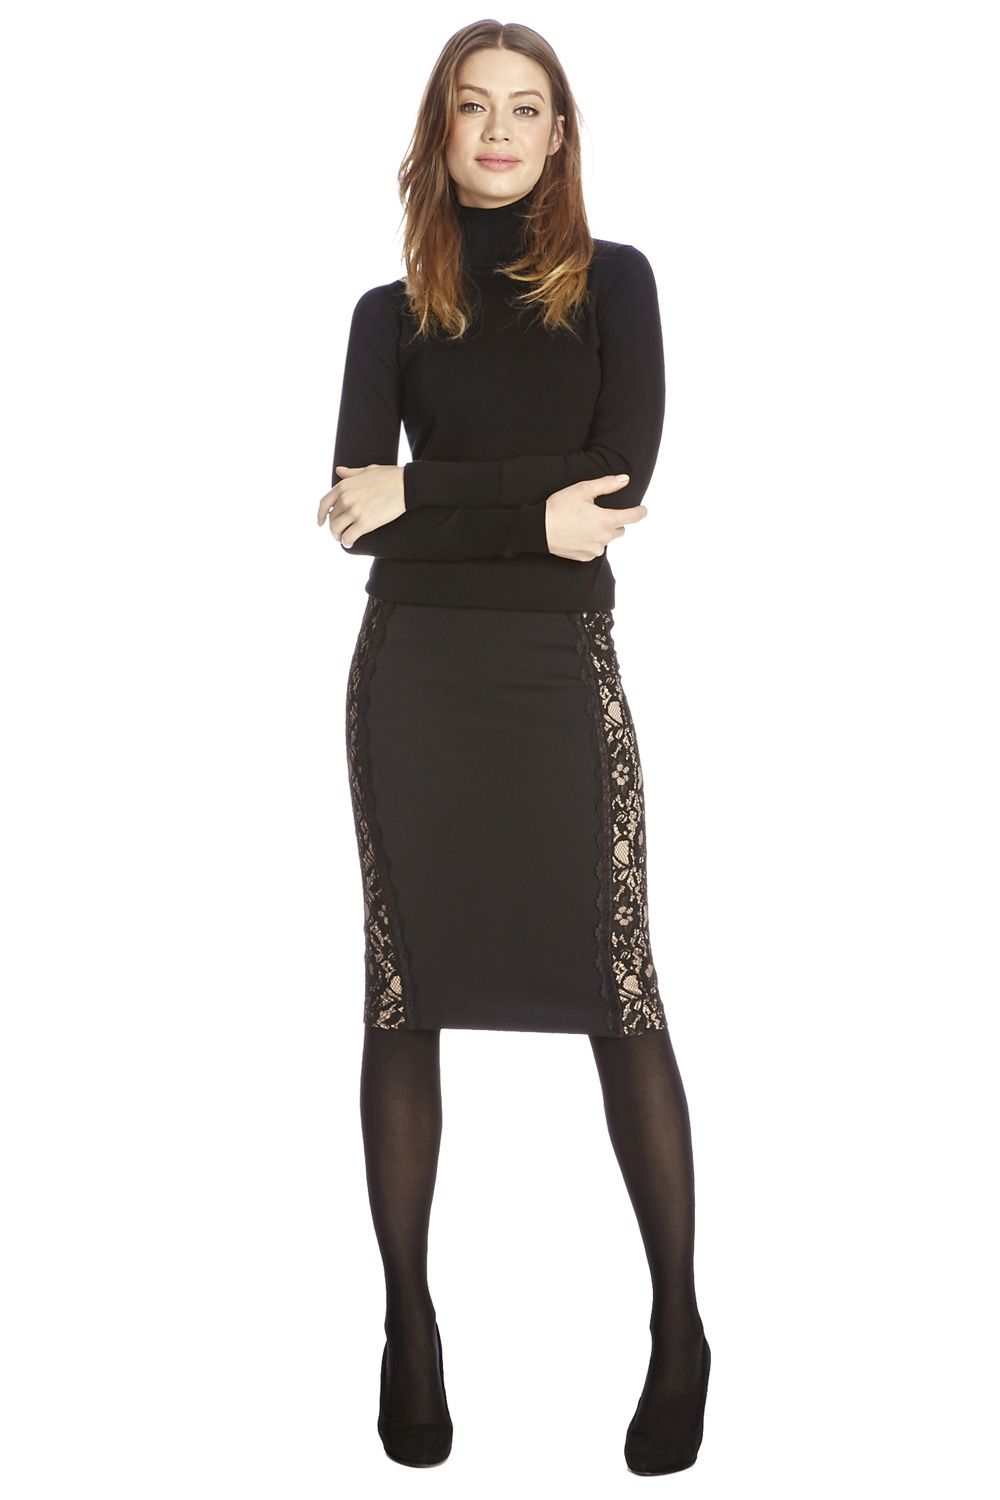 Lace side pencil skirt